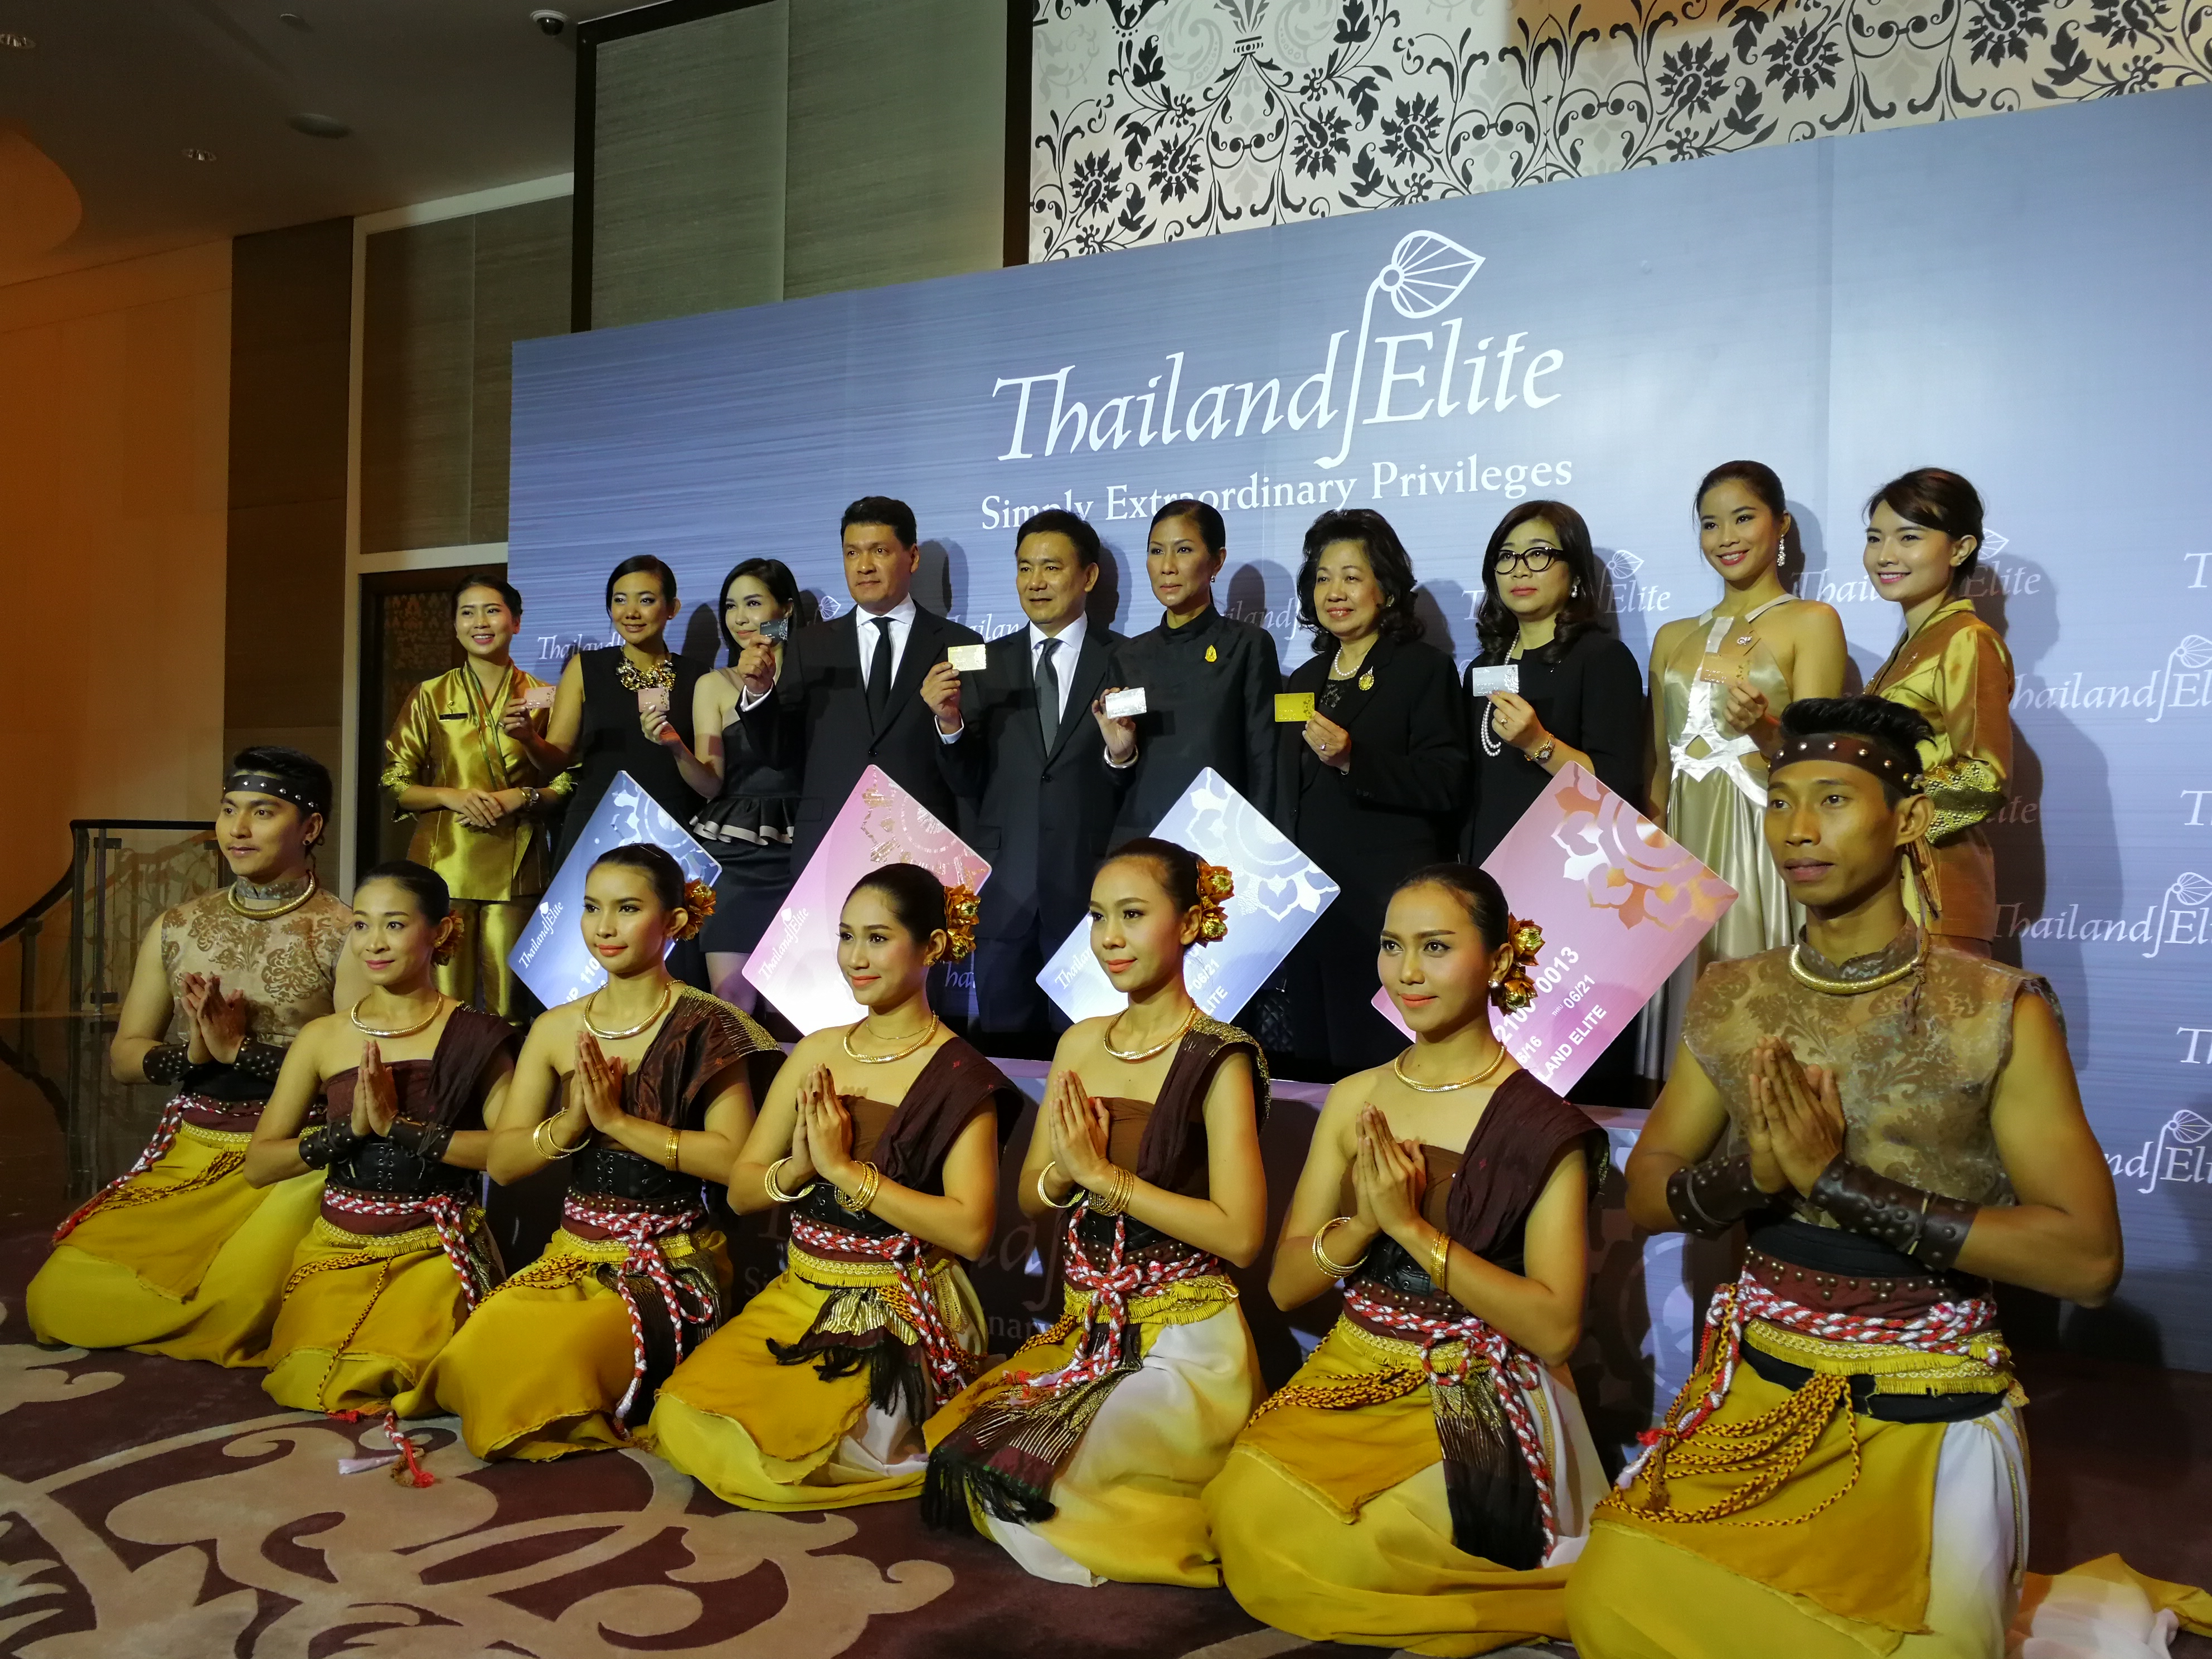 Minister of Tourism and Sports opens new Thailand privilege card project | Samui Times